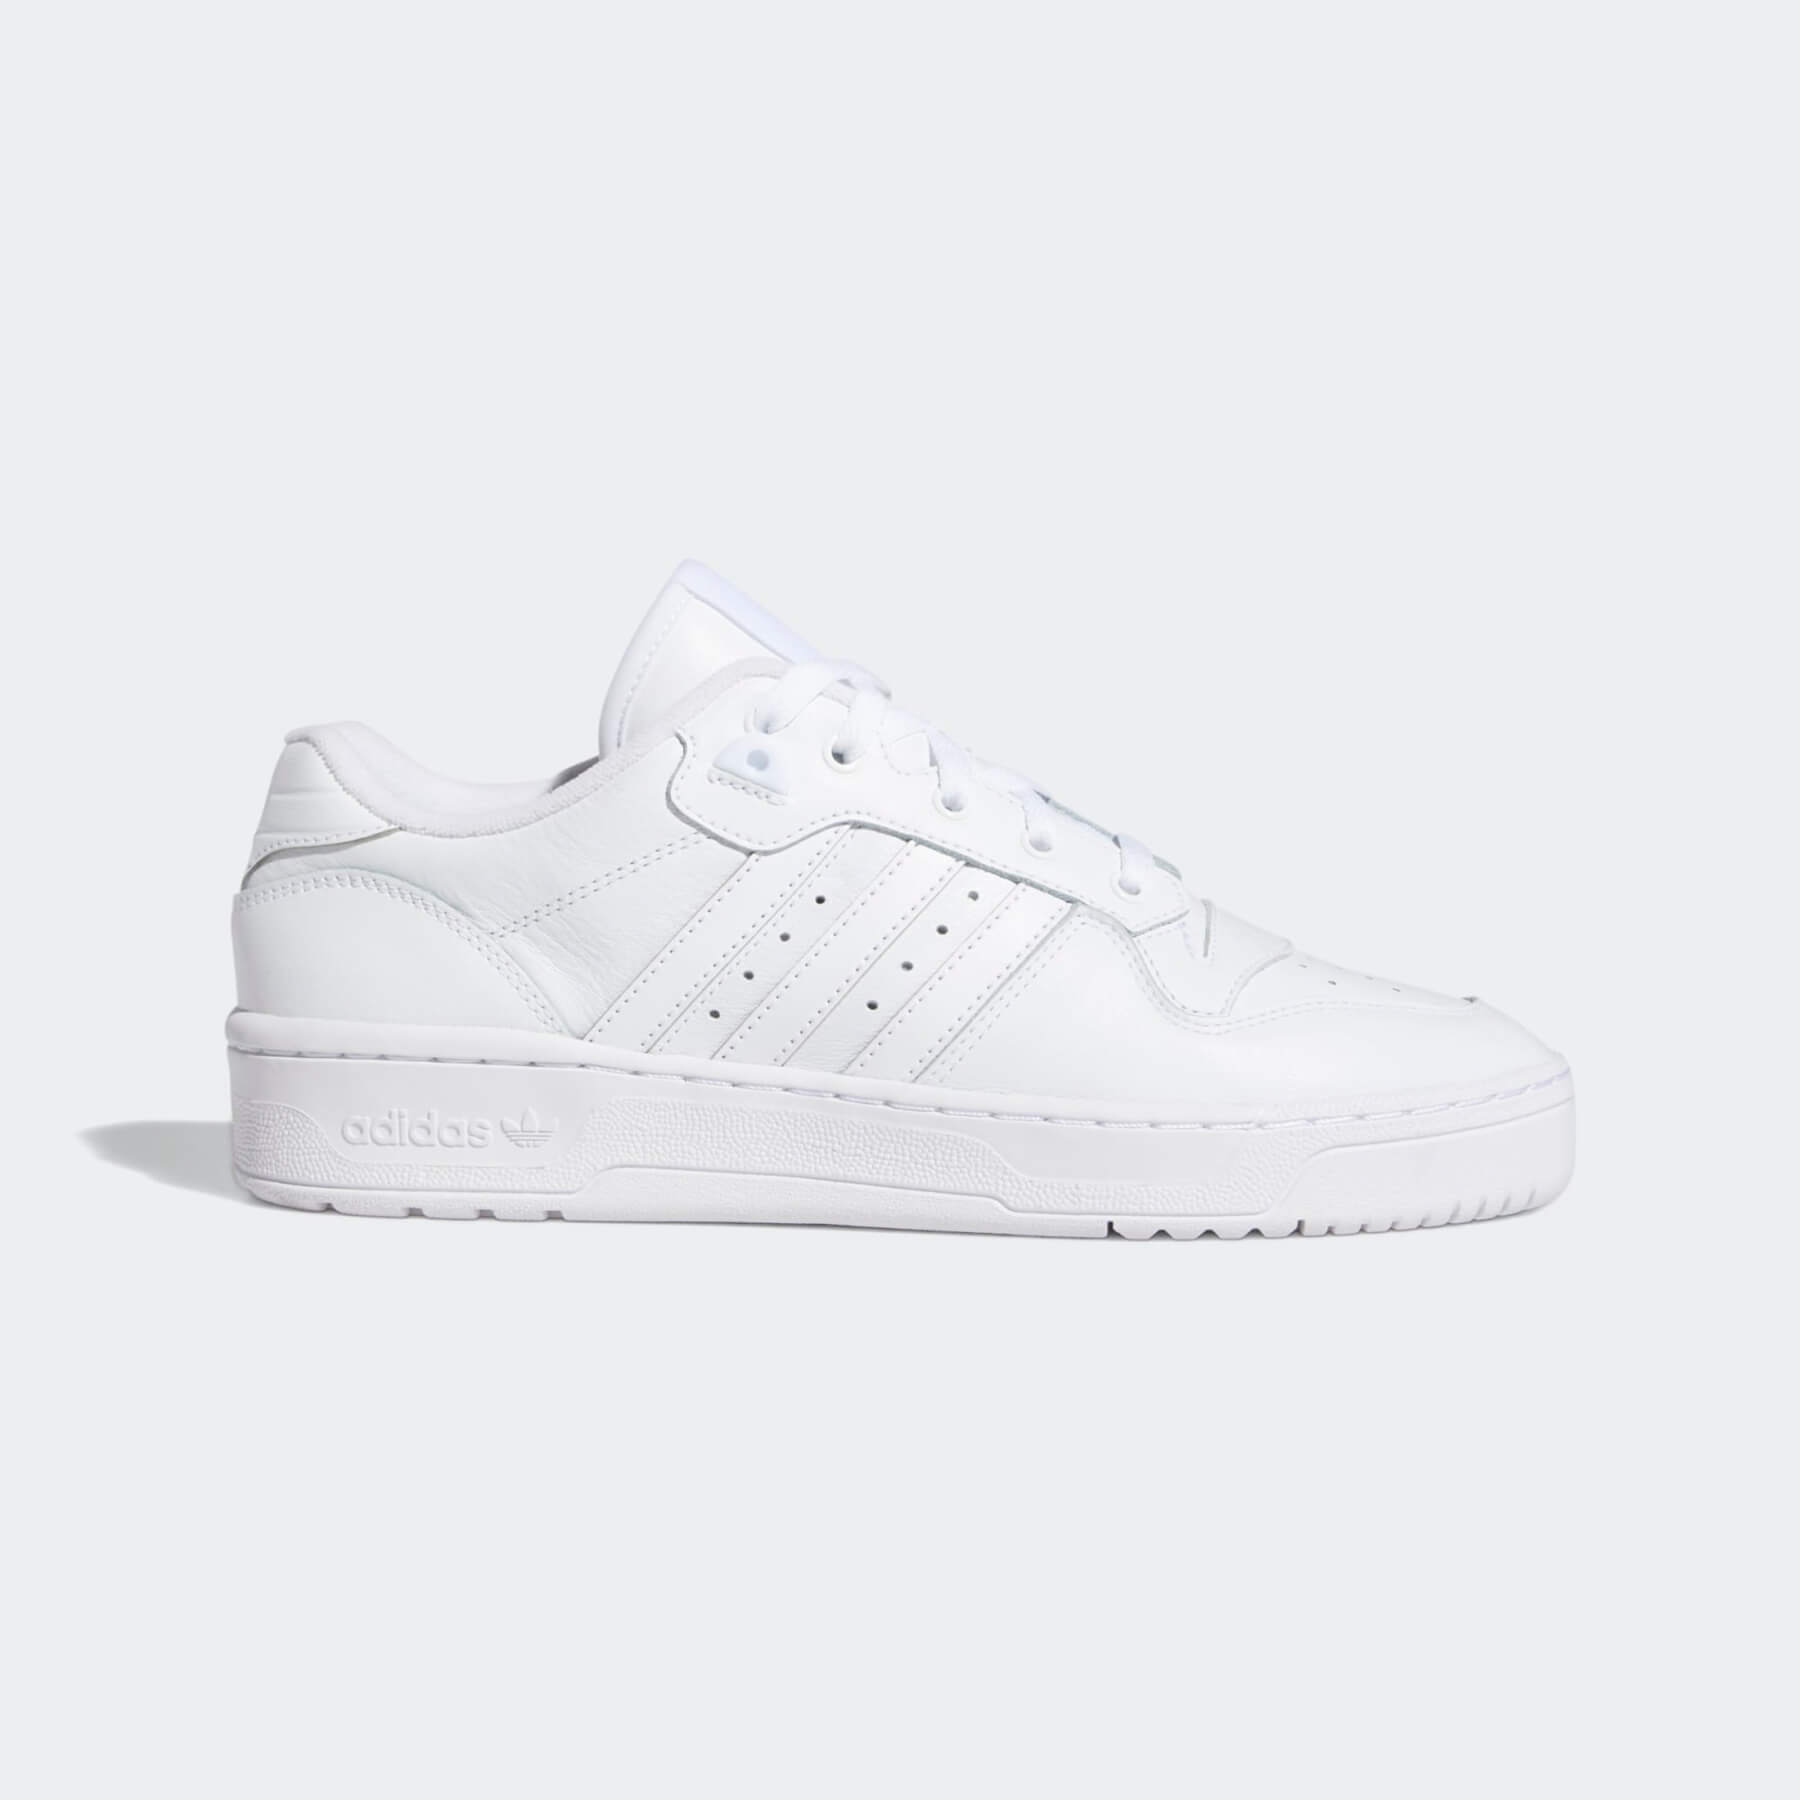 Best men's white sneakers in 2020